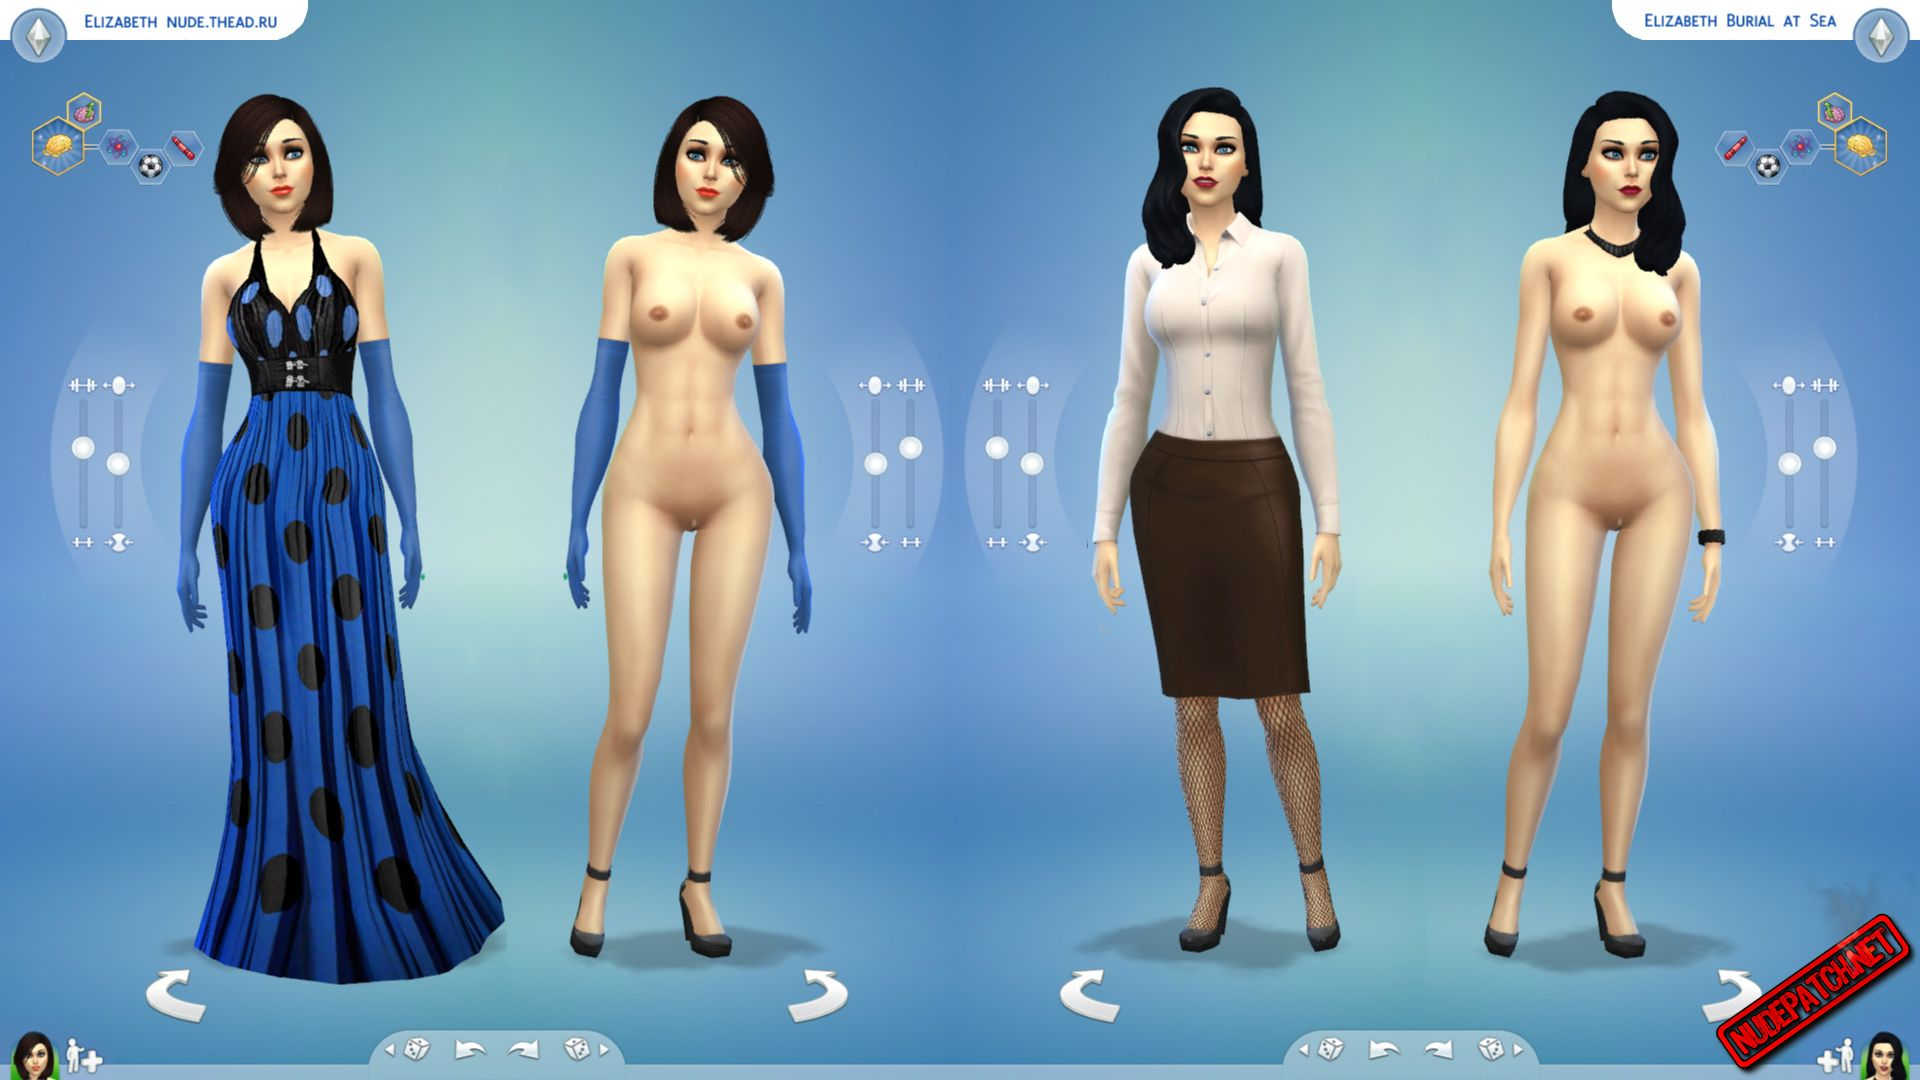 Think, the sims nude skin shaven female